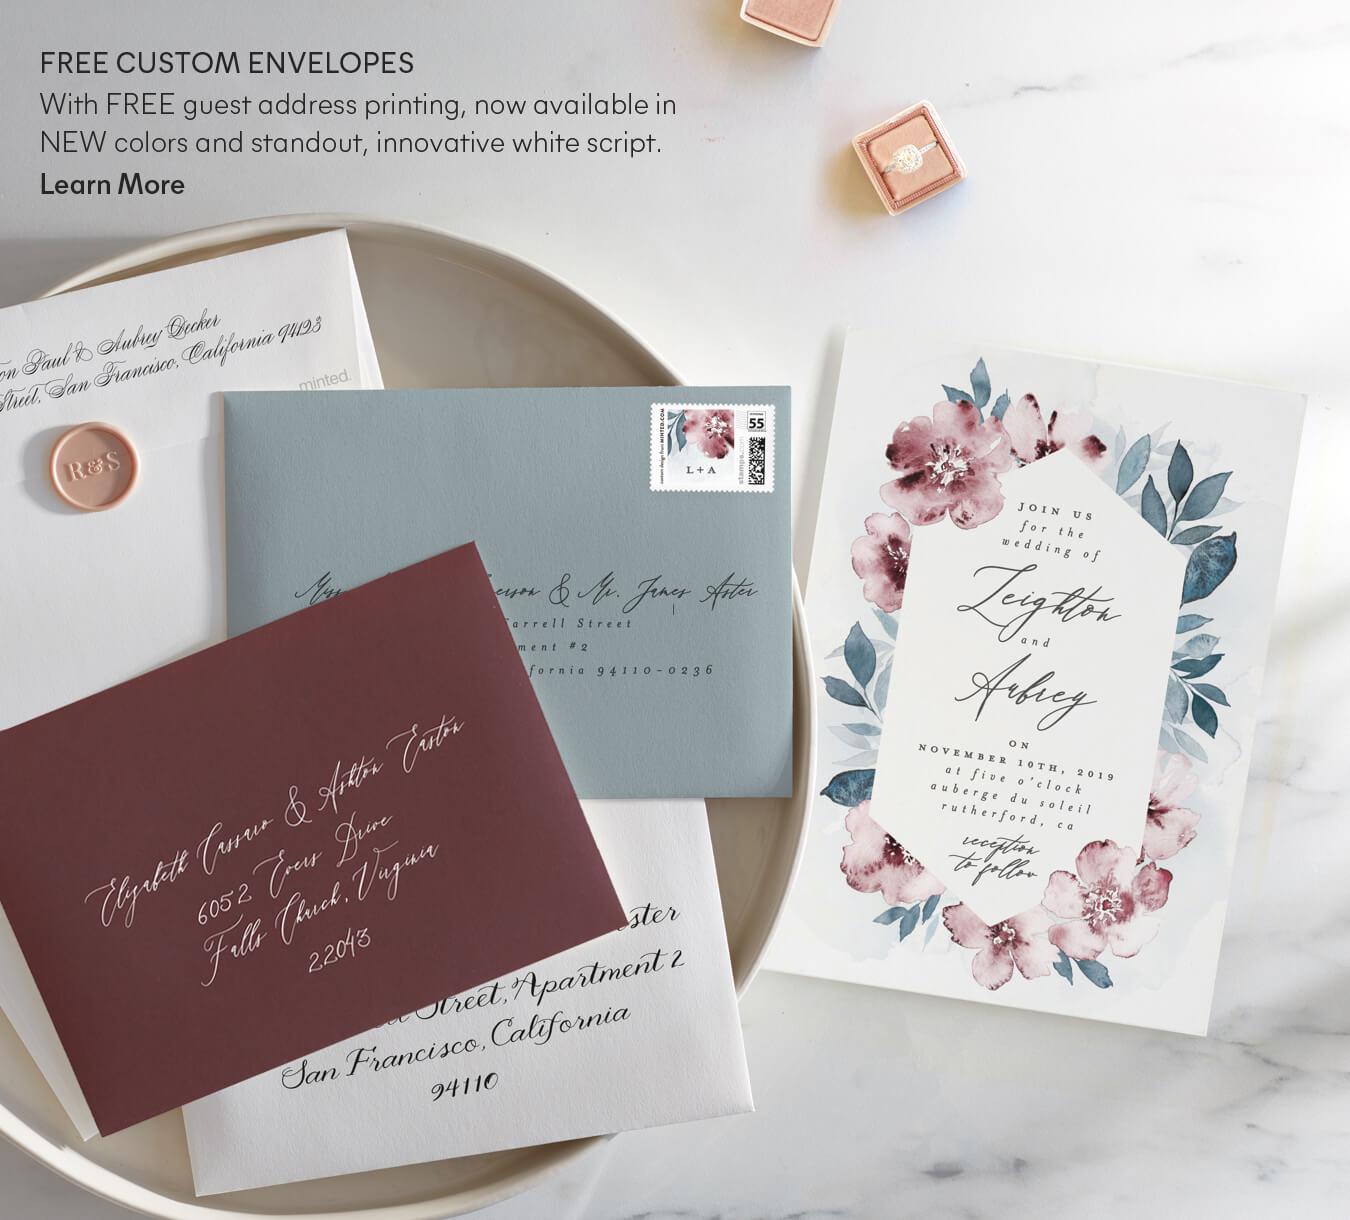 Free Custom Envelopes